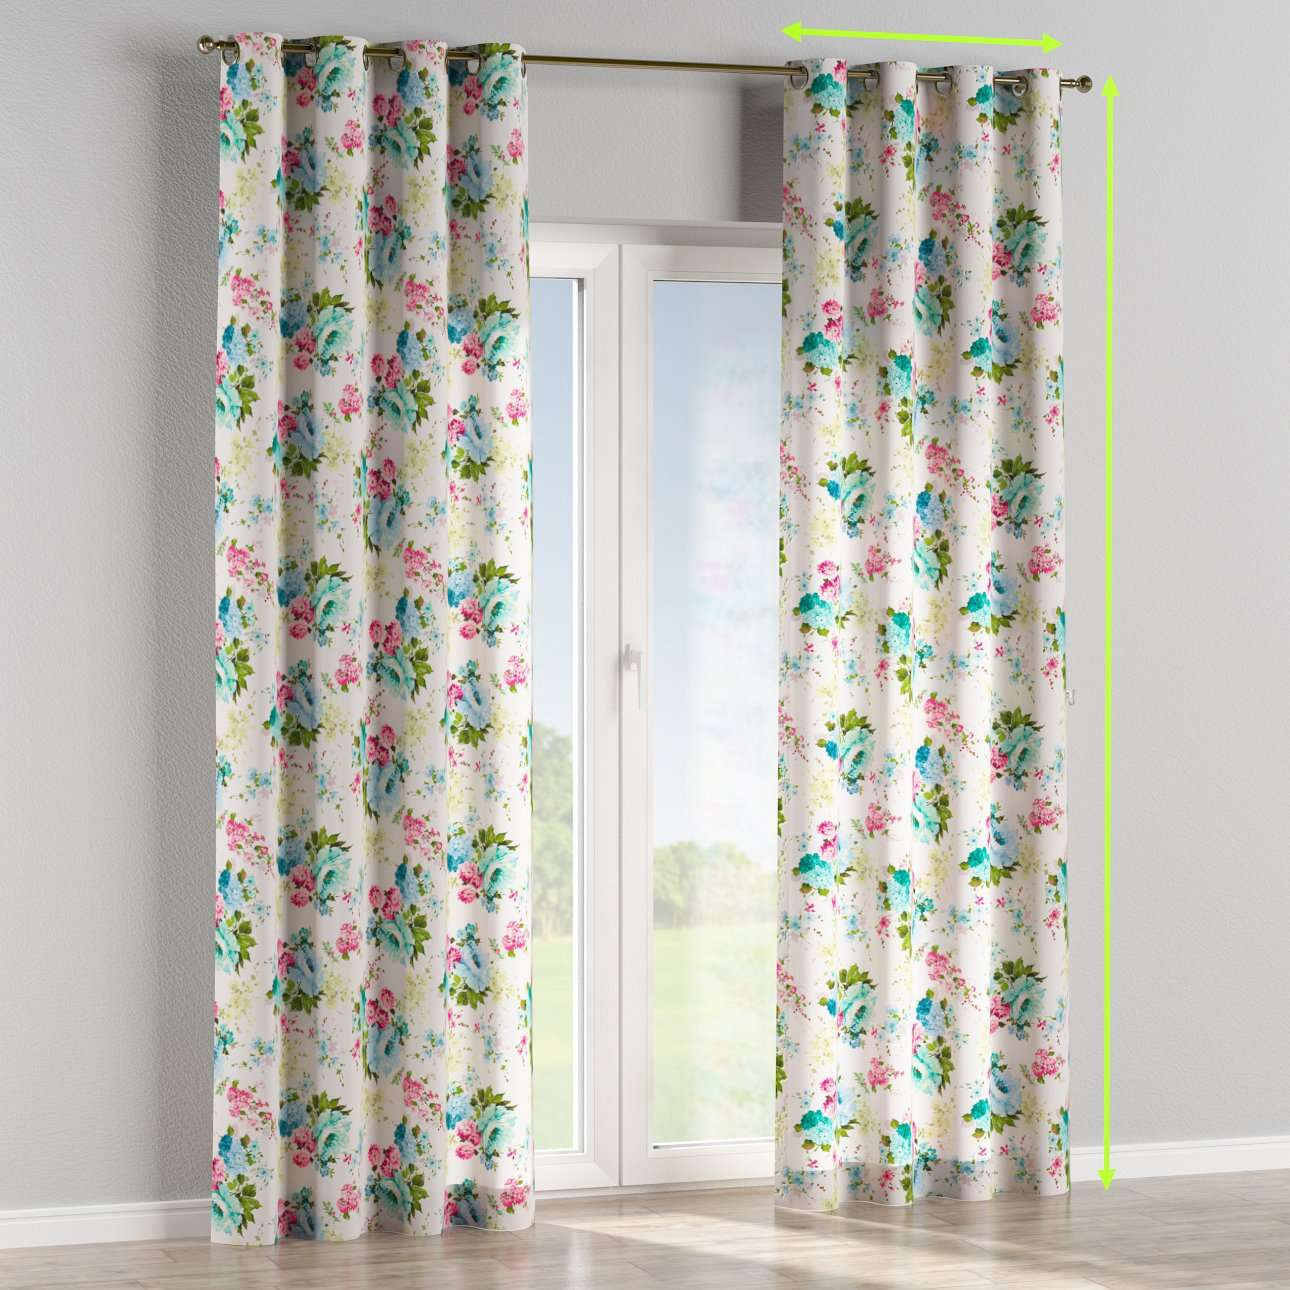 Eyelet lined curtains in collection Monet, fabric: 140-02